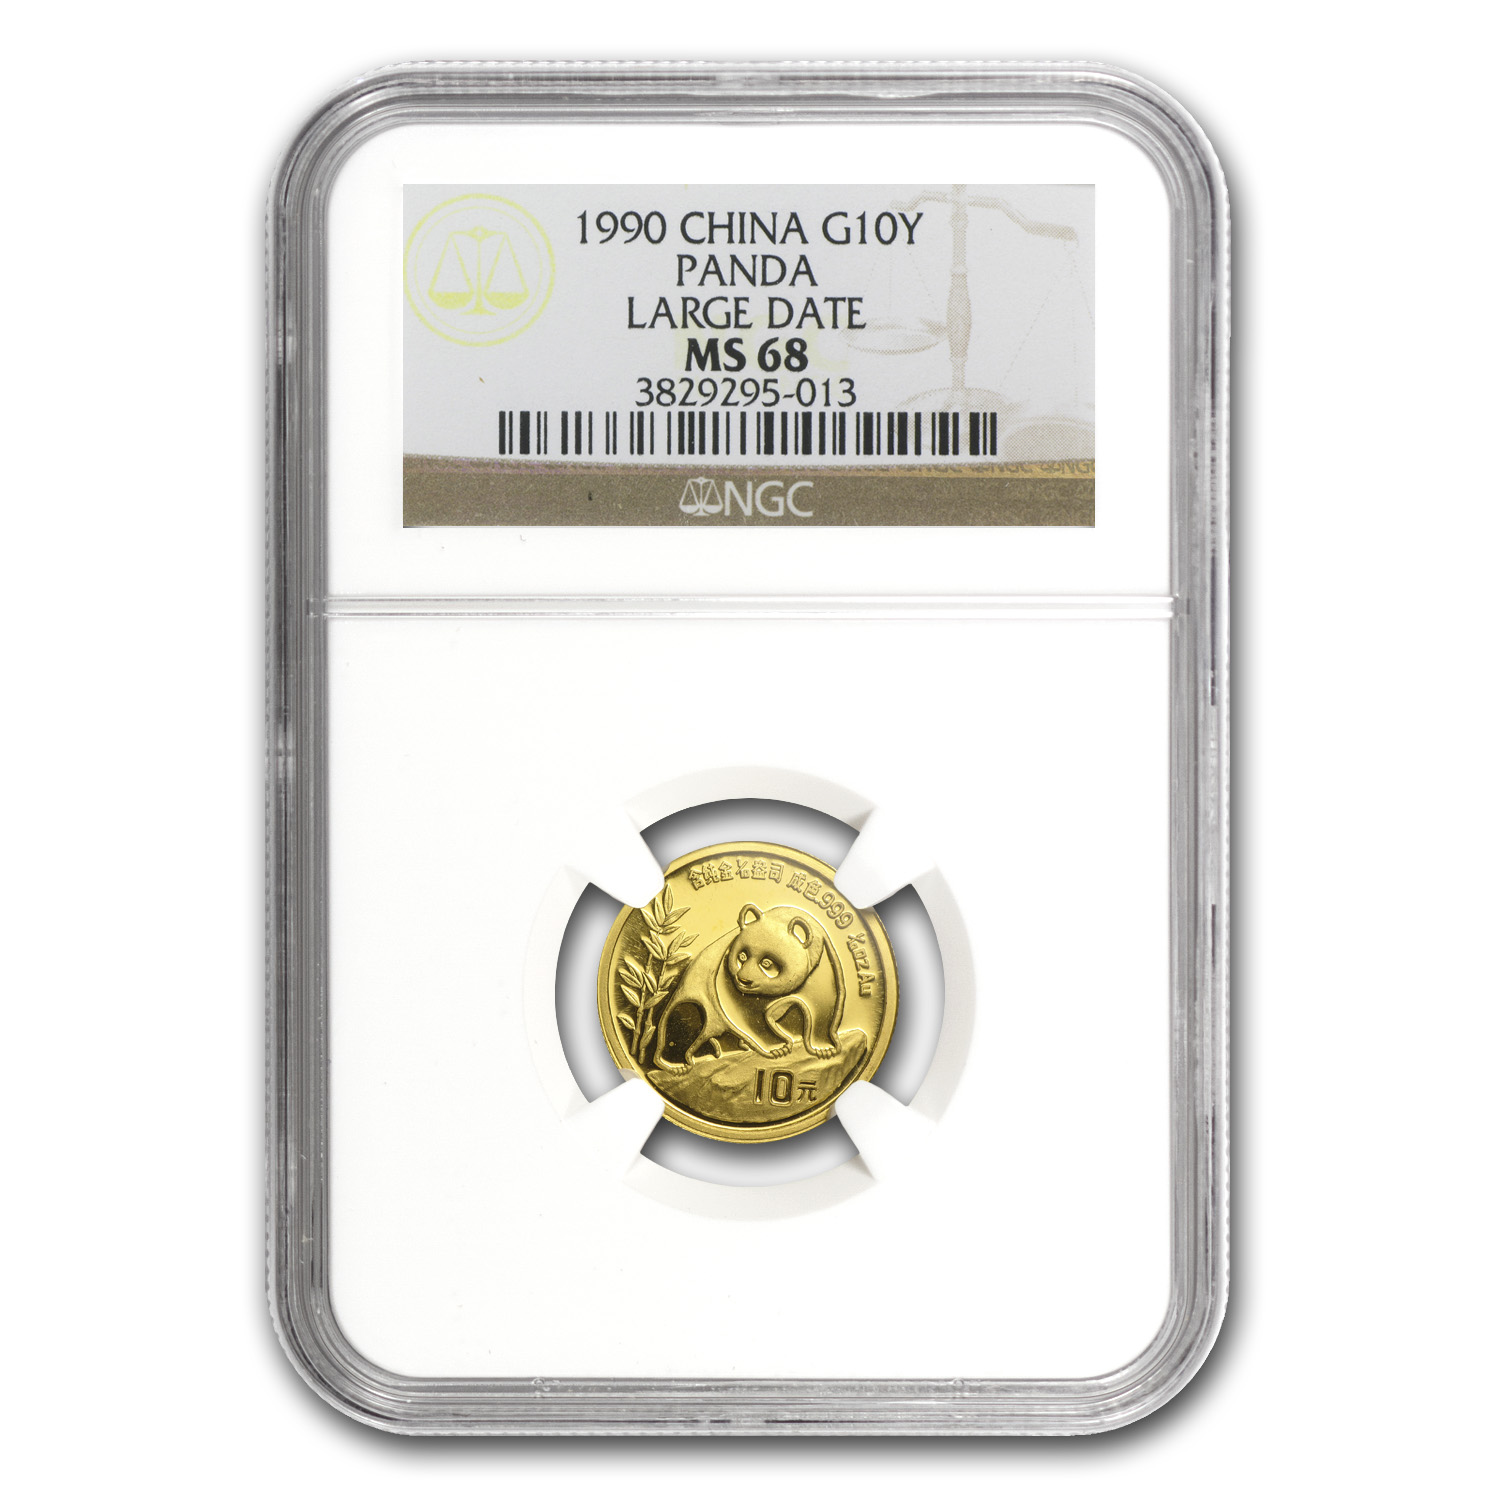 1990 (1/10 oz) Gold Chinese Pandas Large Date - MS-68 NGC